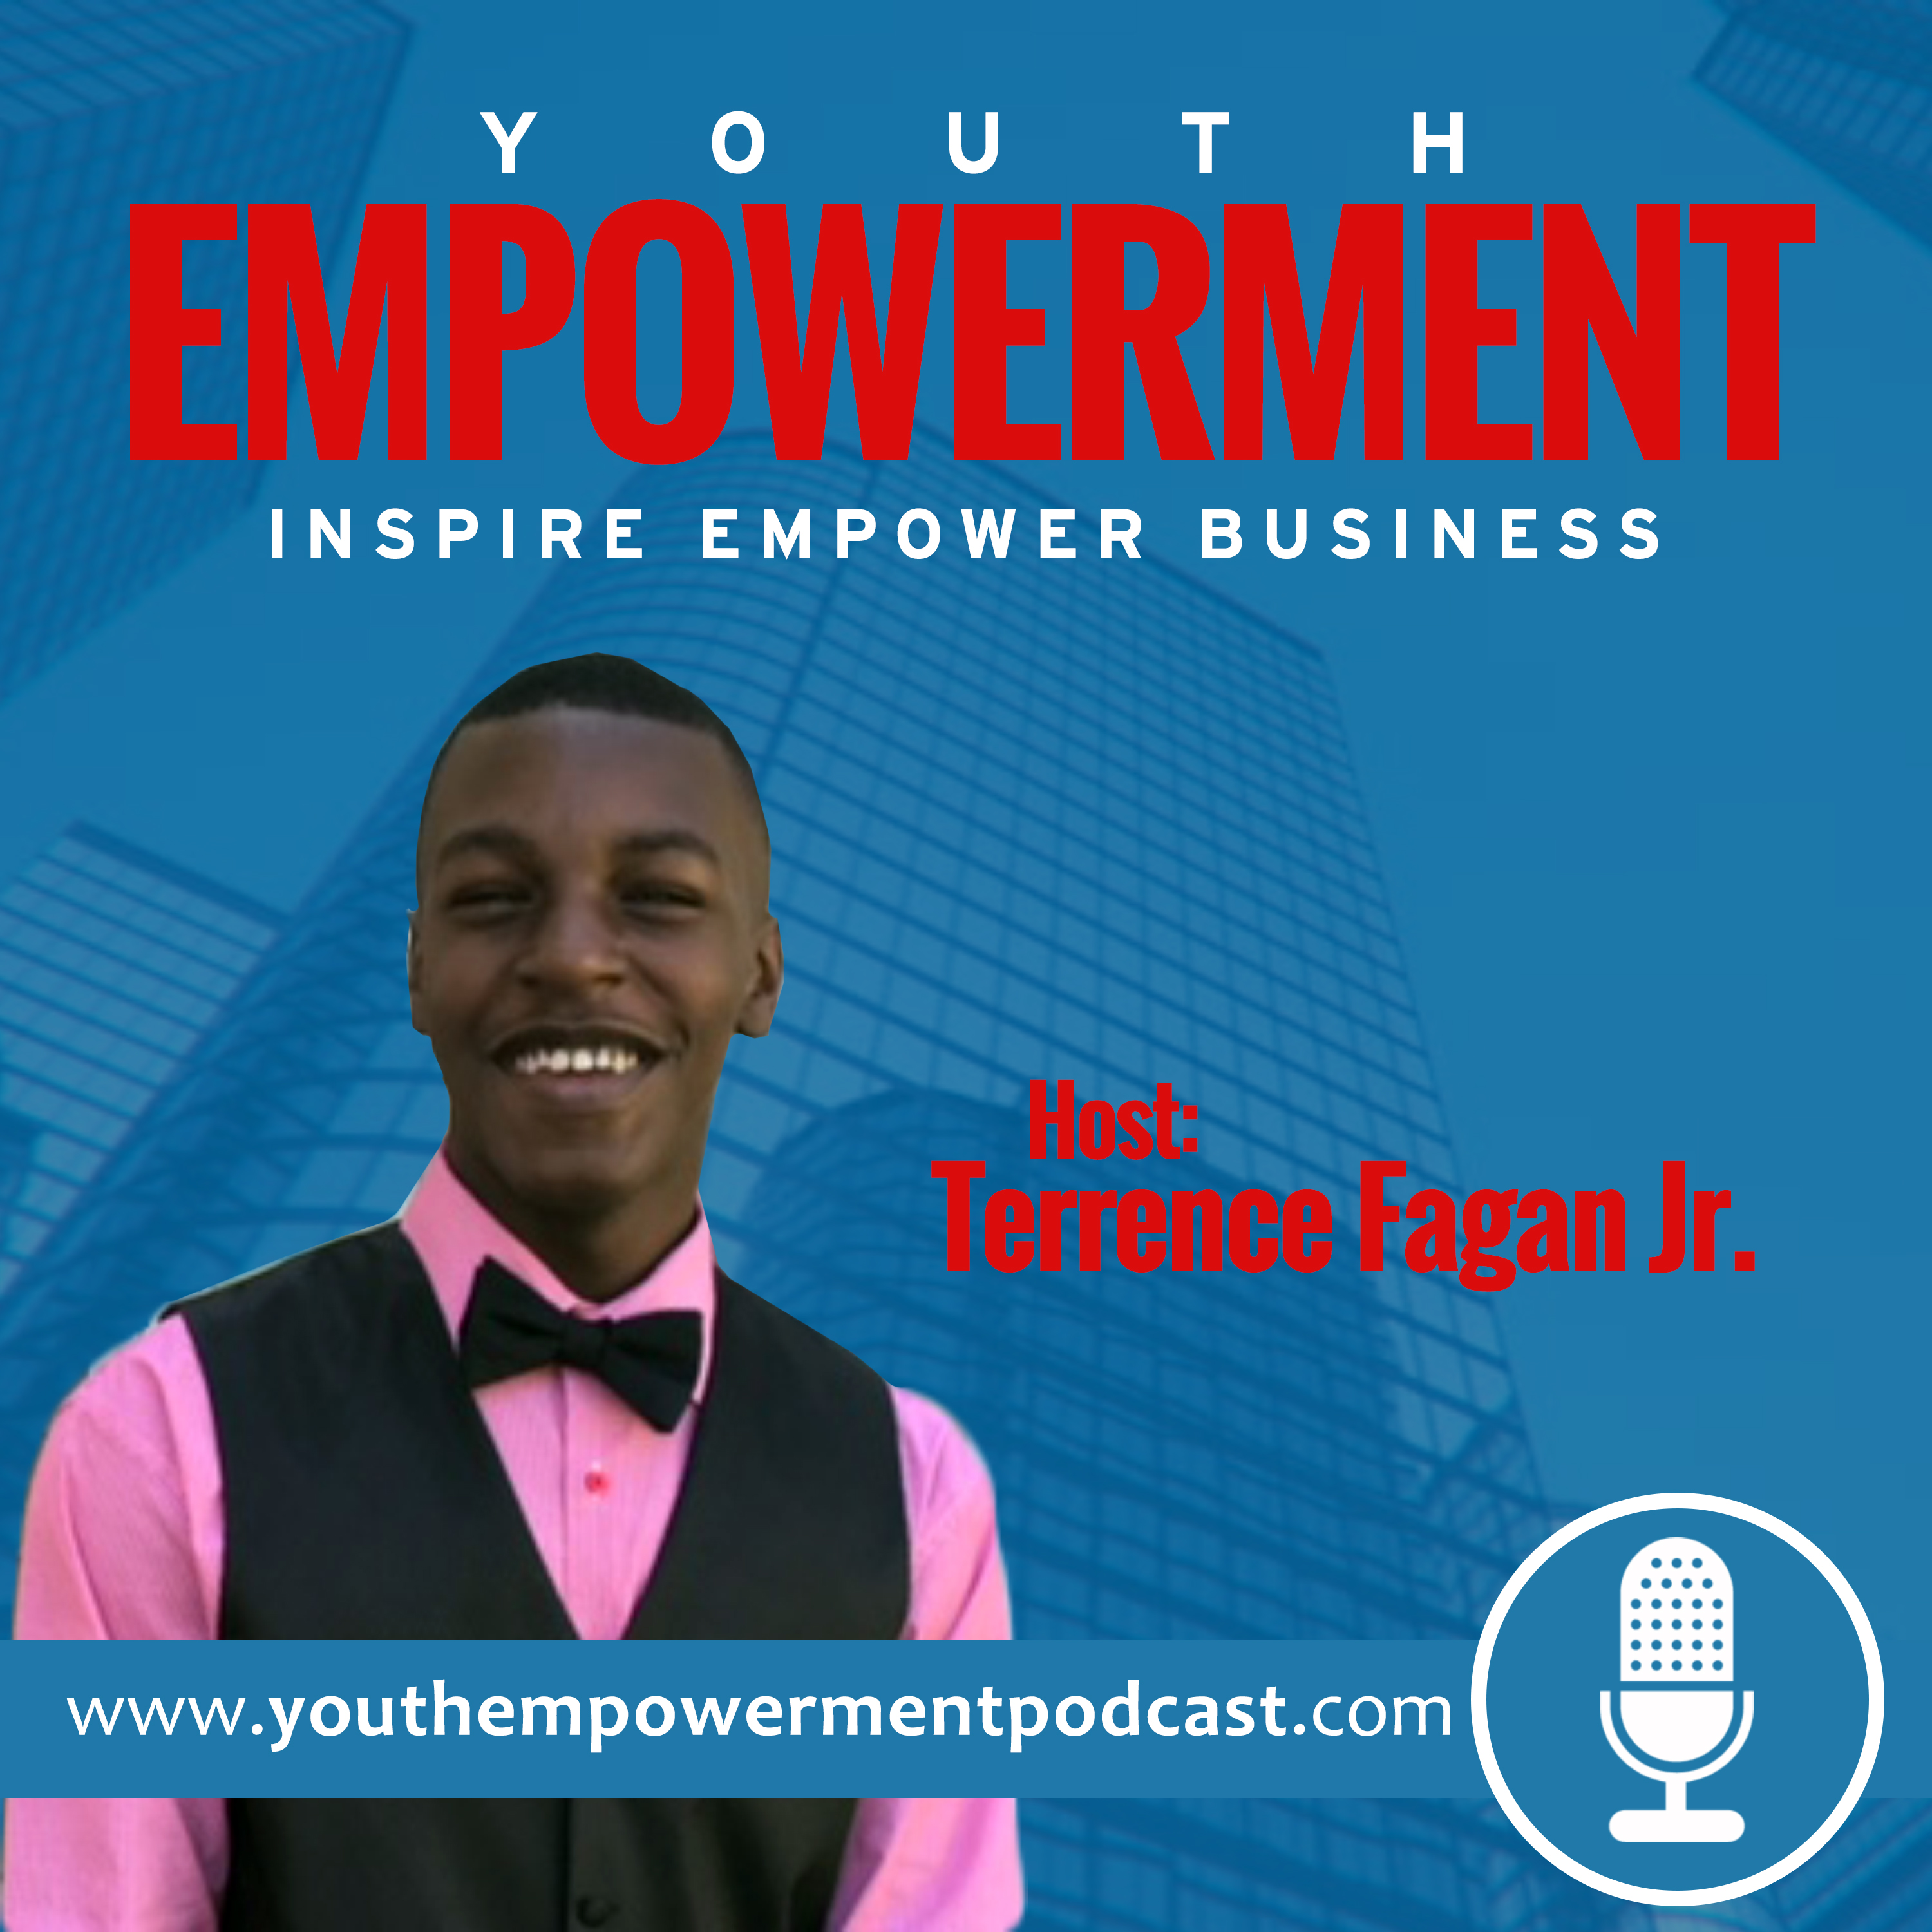 From Being Sentenced To Prison To Becoming A Successful Entrepreneur - Kenneth Carter